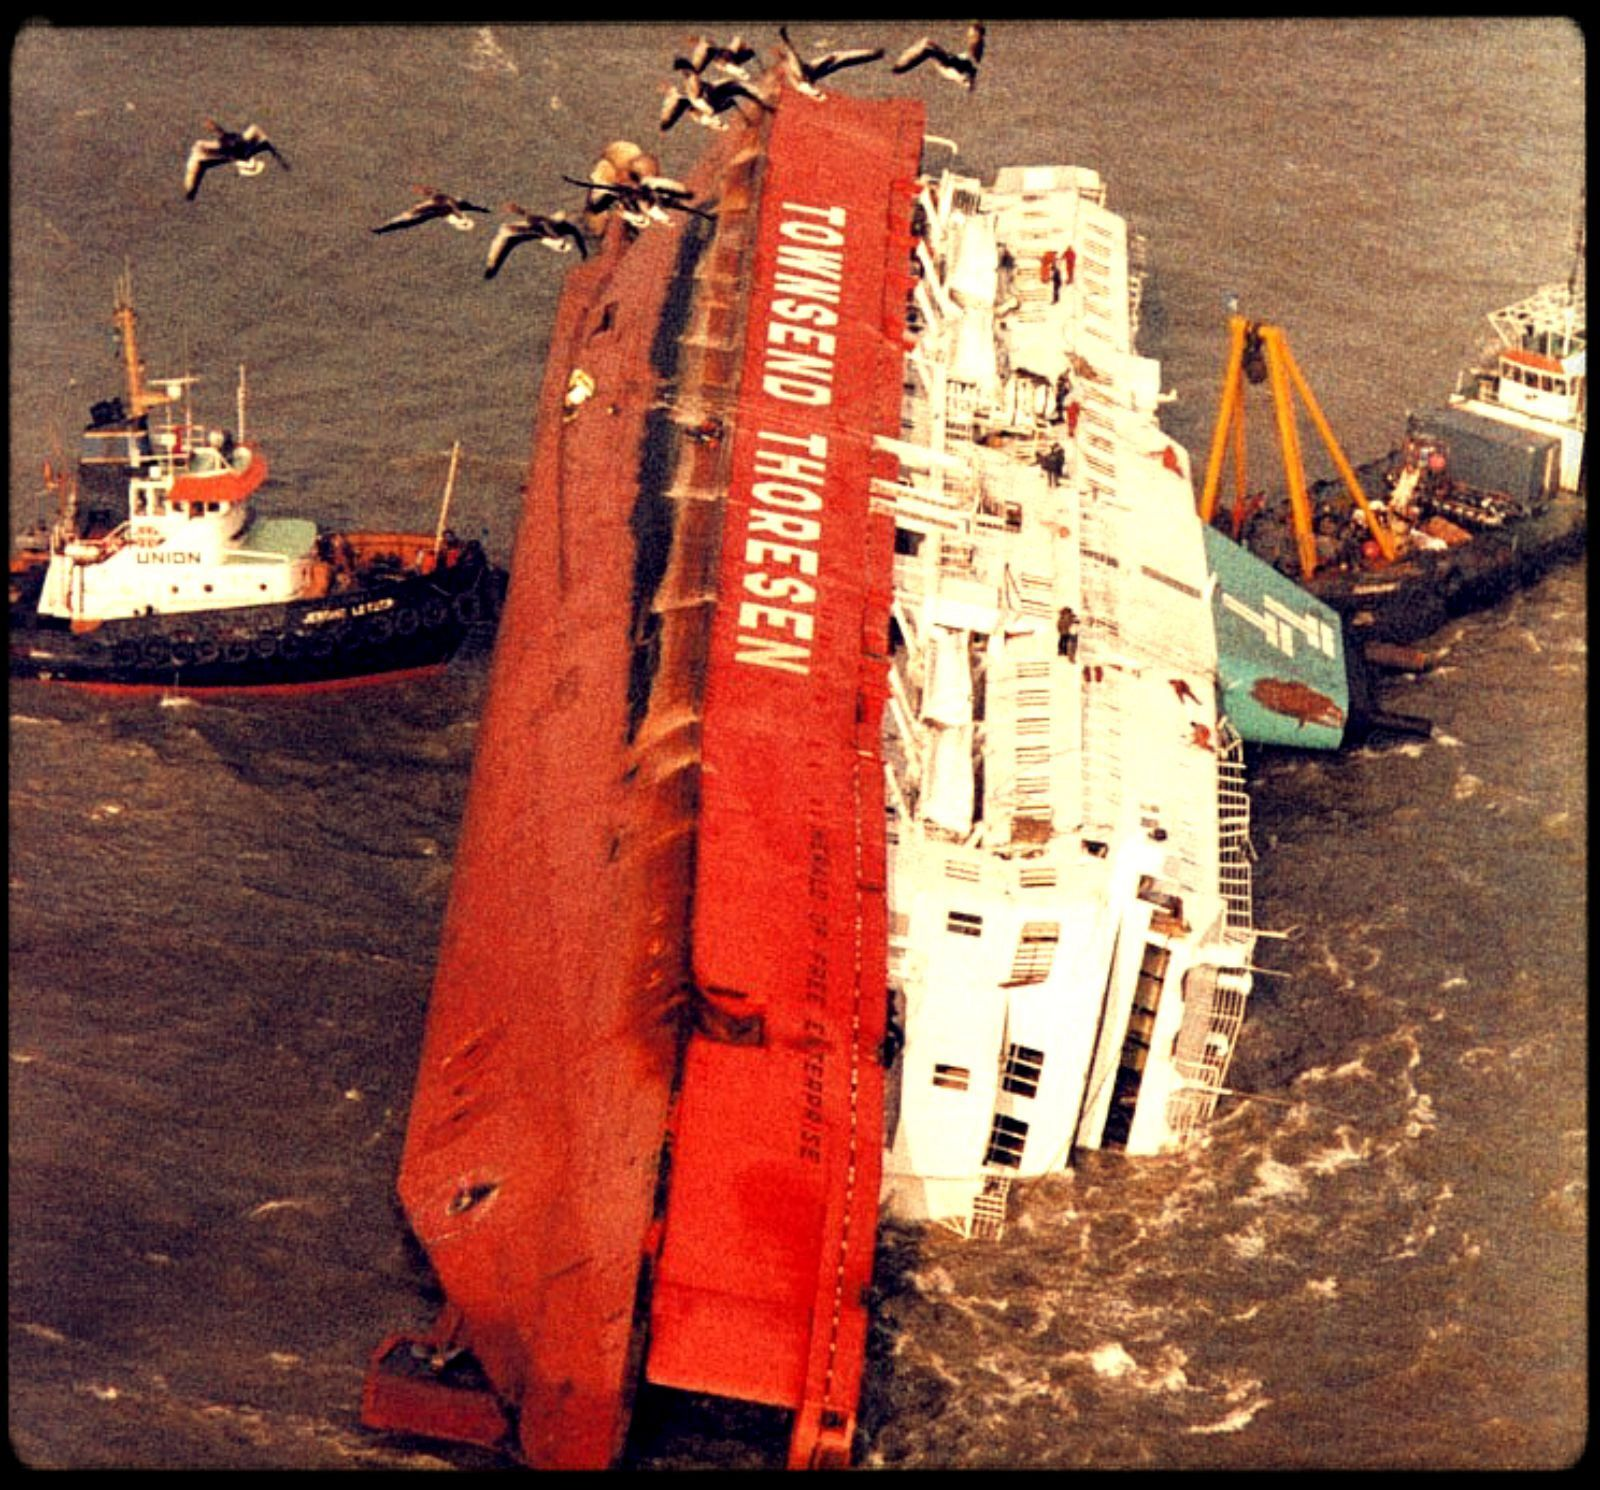 A British Ferry Leaving Zeebrugge Belgium Capsized Drowning 188 People On March 6 1987 Shockingly Poor Safety Proced Abandoned Ships Water Flood Shipwreck